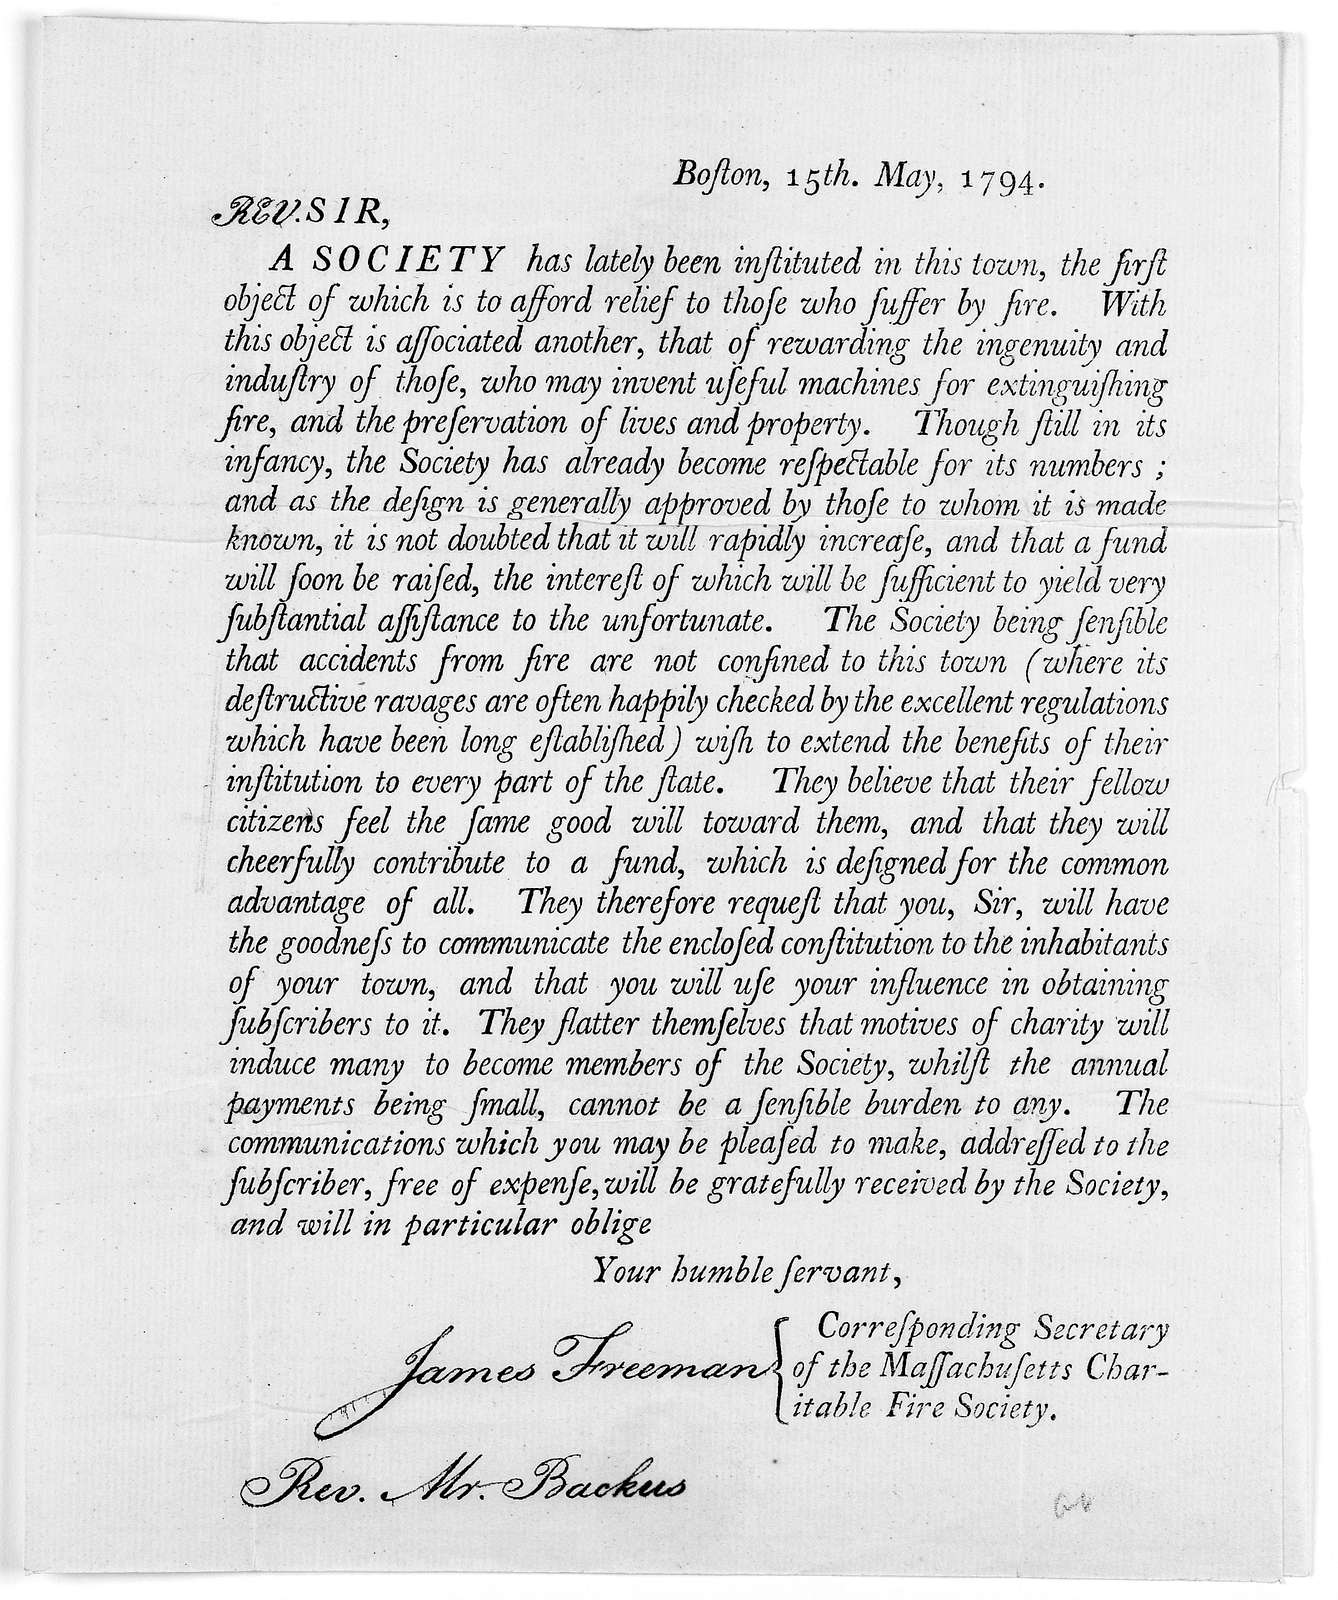 Boston, 15th, May, 1794. Sir. A society has lately been instituted in this town, the first object of which is to afford relief to those who suffer by fire ... Your humble servant. [Signed in mss.] James Freeman. Corresponding secretary of the Ma